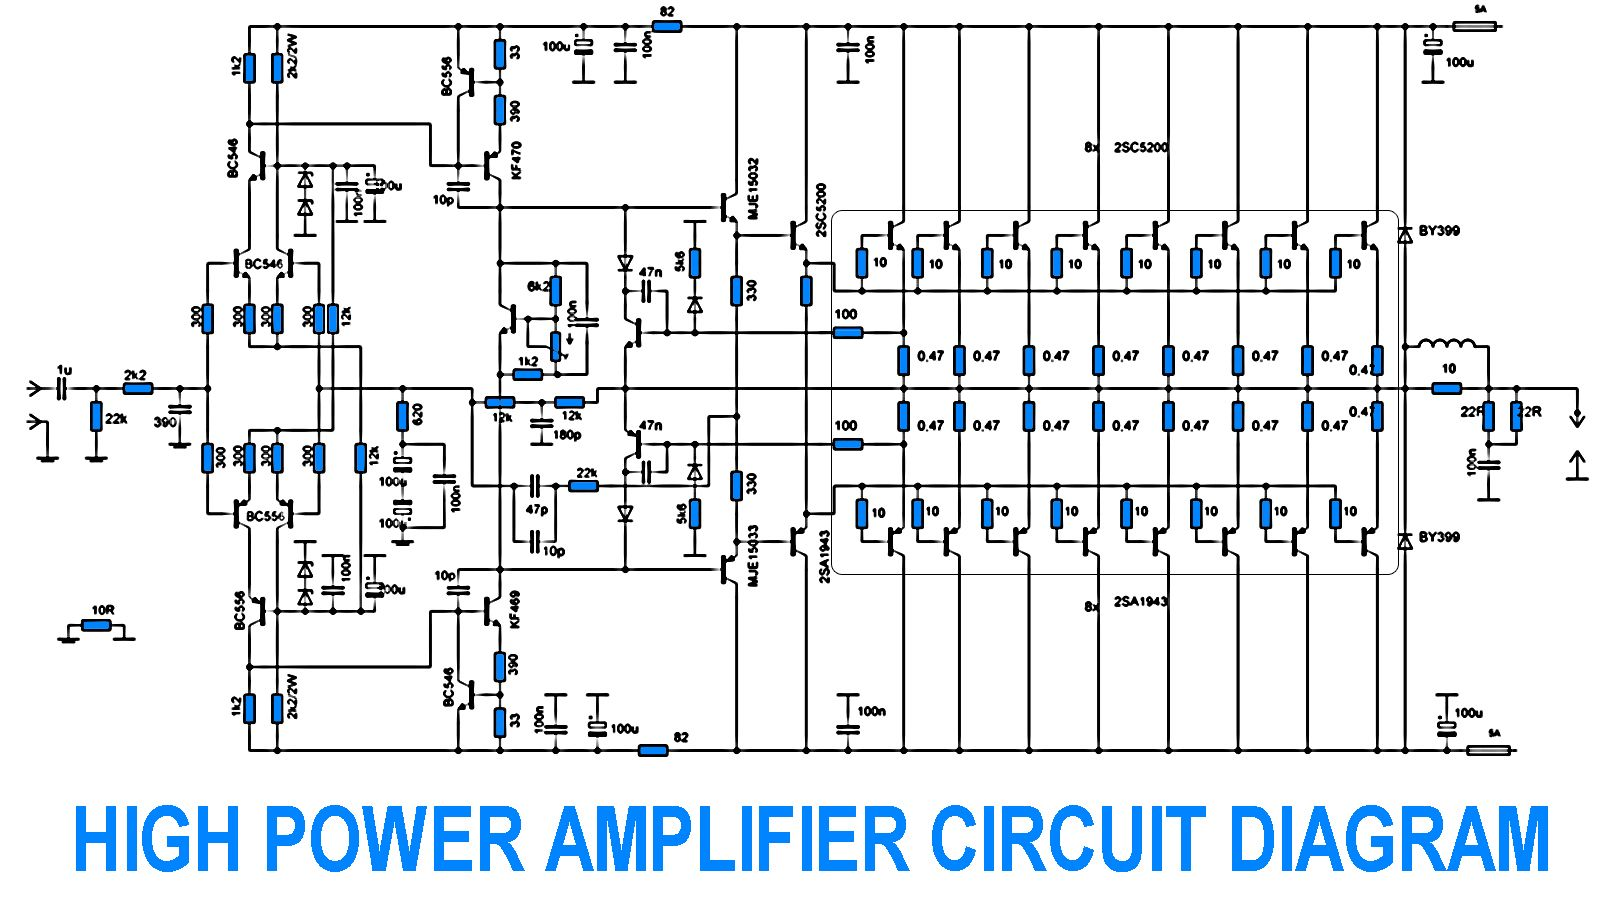 WRG-4669] Simple High Watt Fet Amplifier Circuit Diagramyadielbestshowrooms-100804.mx.tl